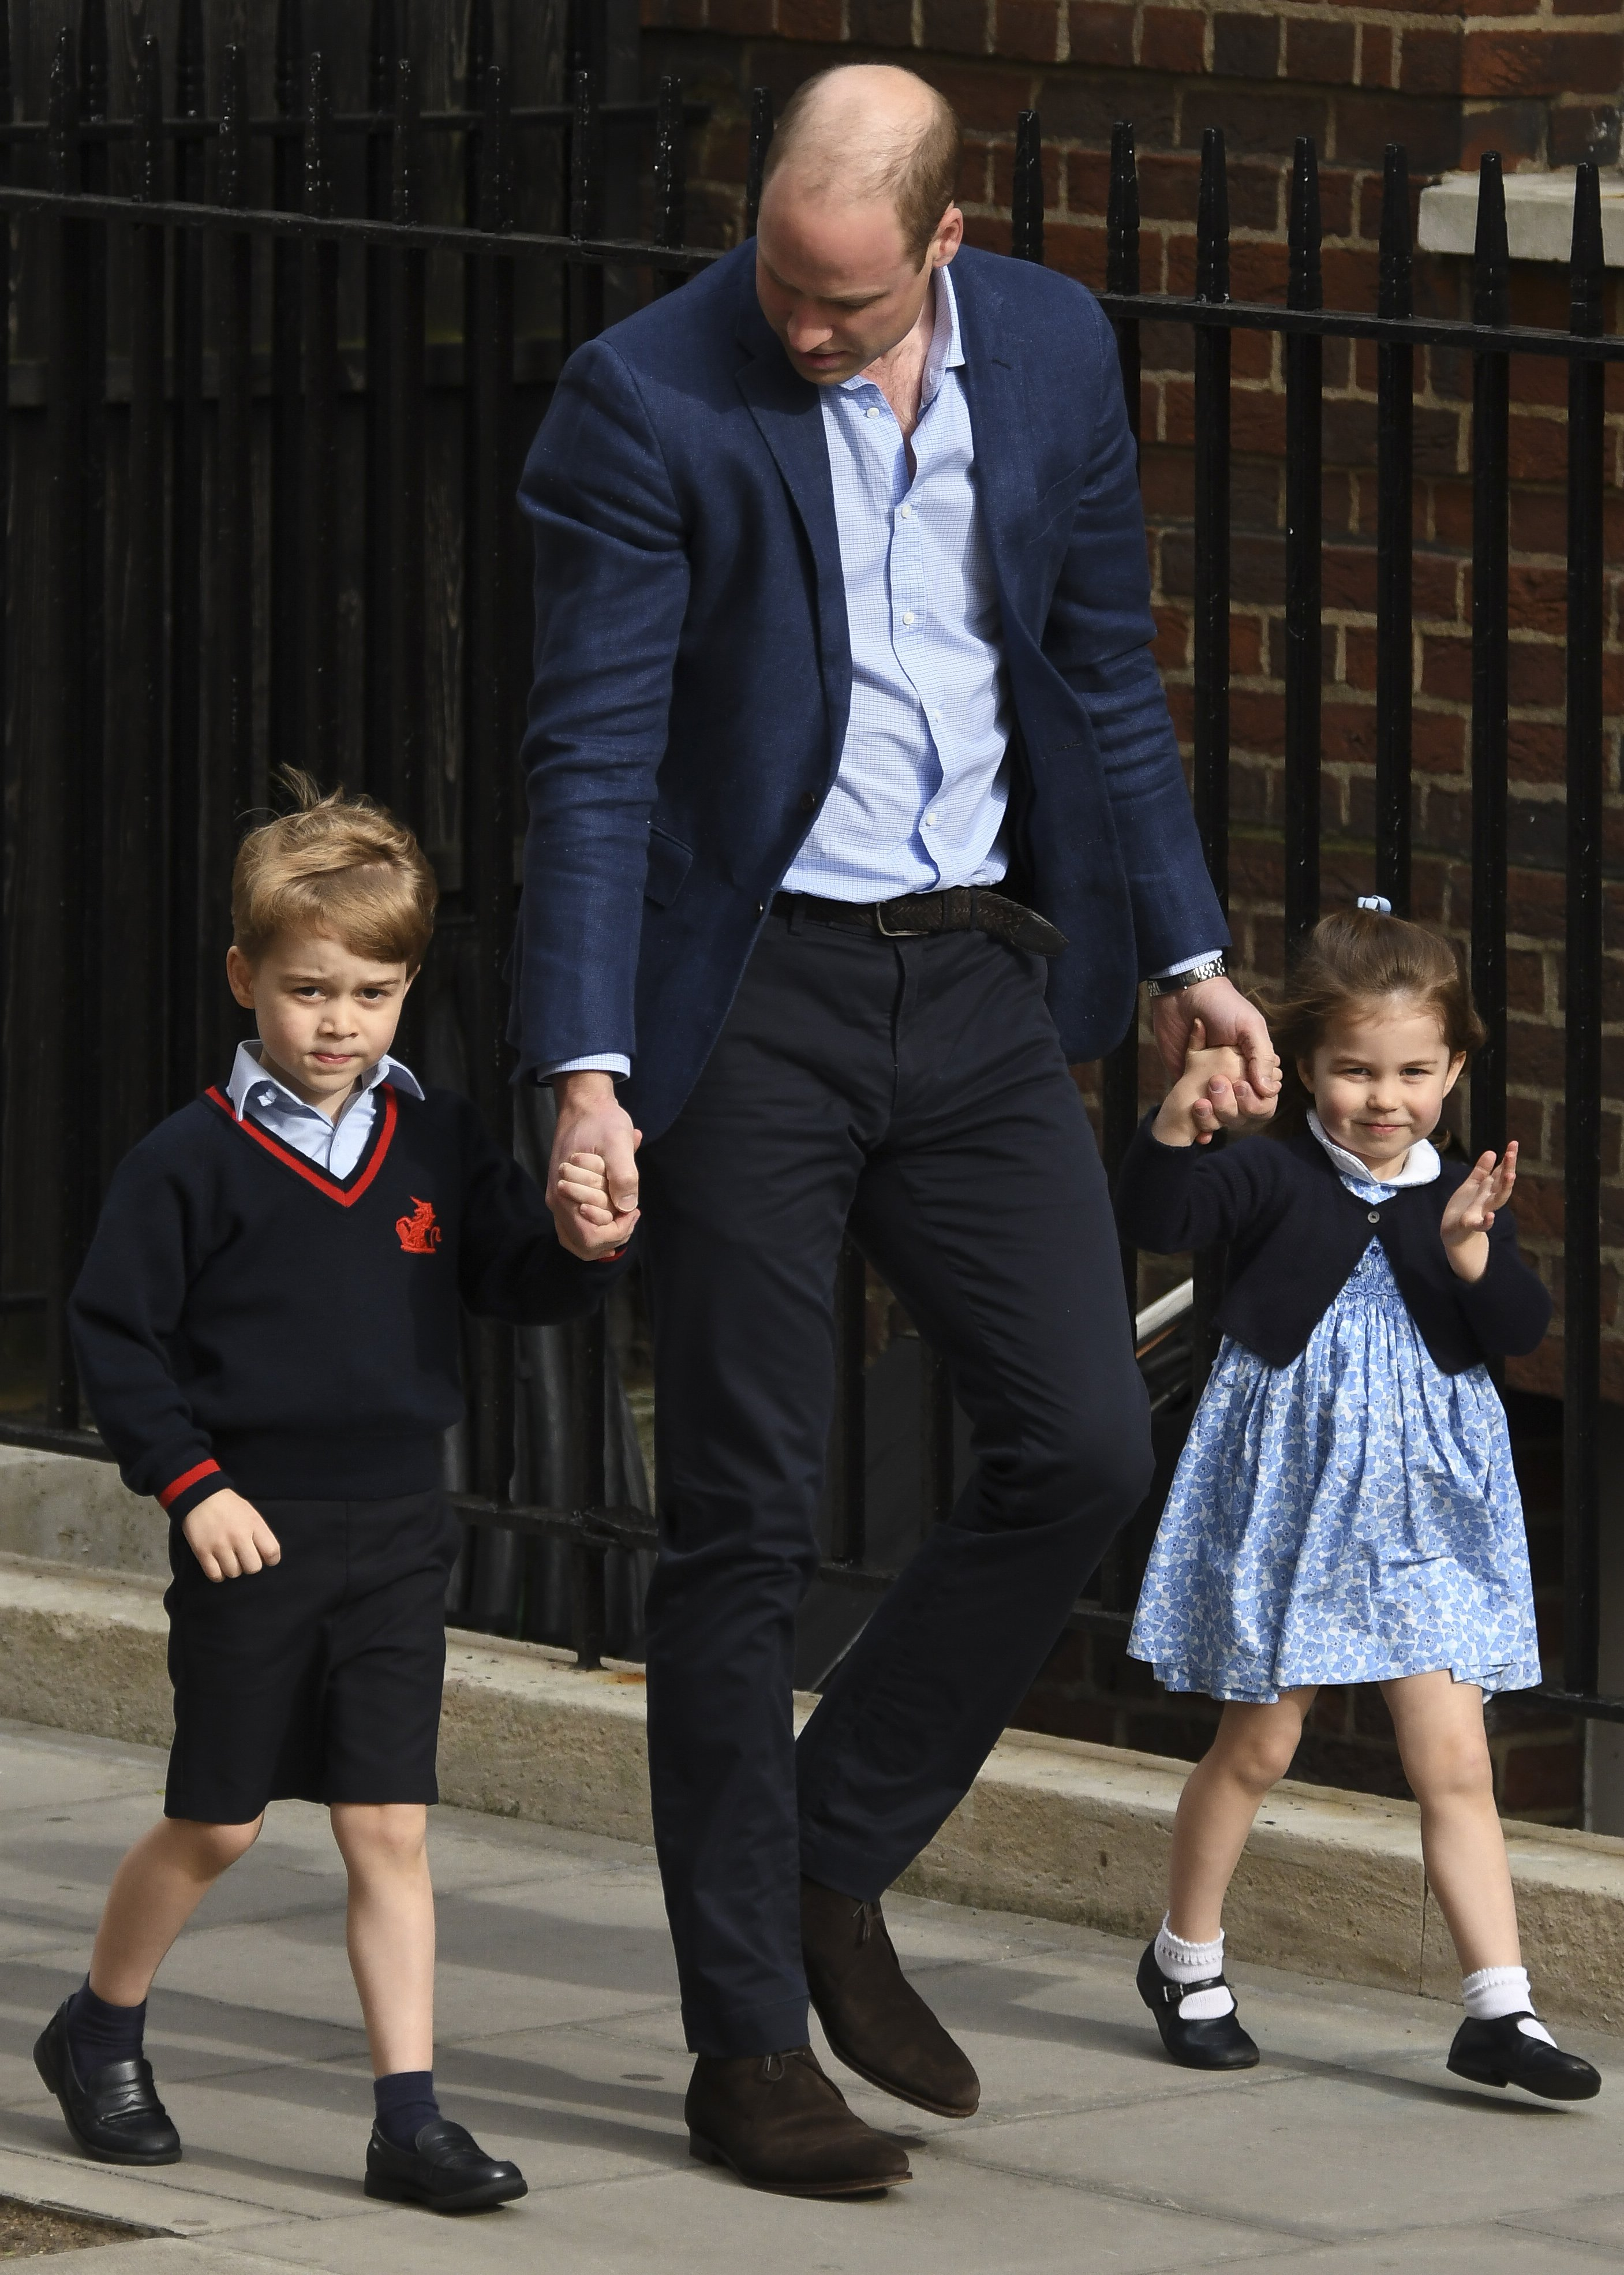 Prince William, Prince George, and Princess Charlotte at the Lindo Wing after Duchess Kate gave birth to another son at St Mary's Hospital on April 23, 2018 in London, England | Photo: Getty Images